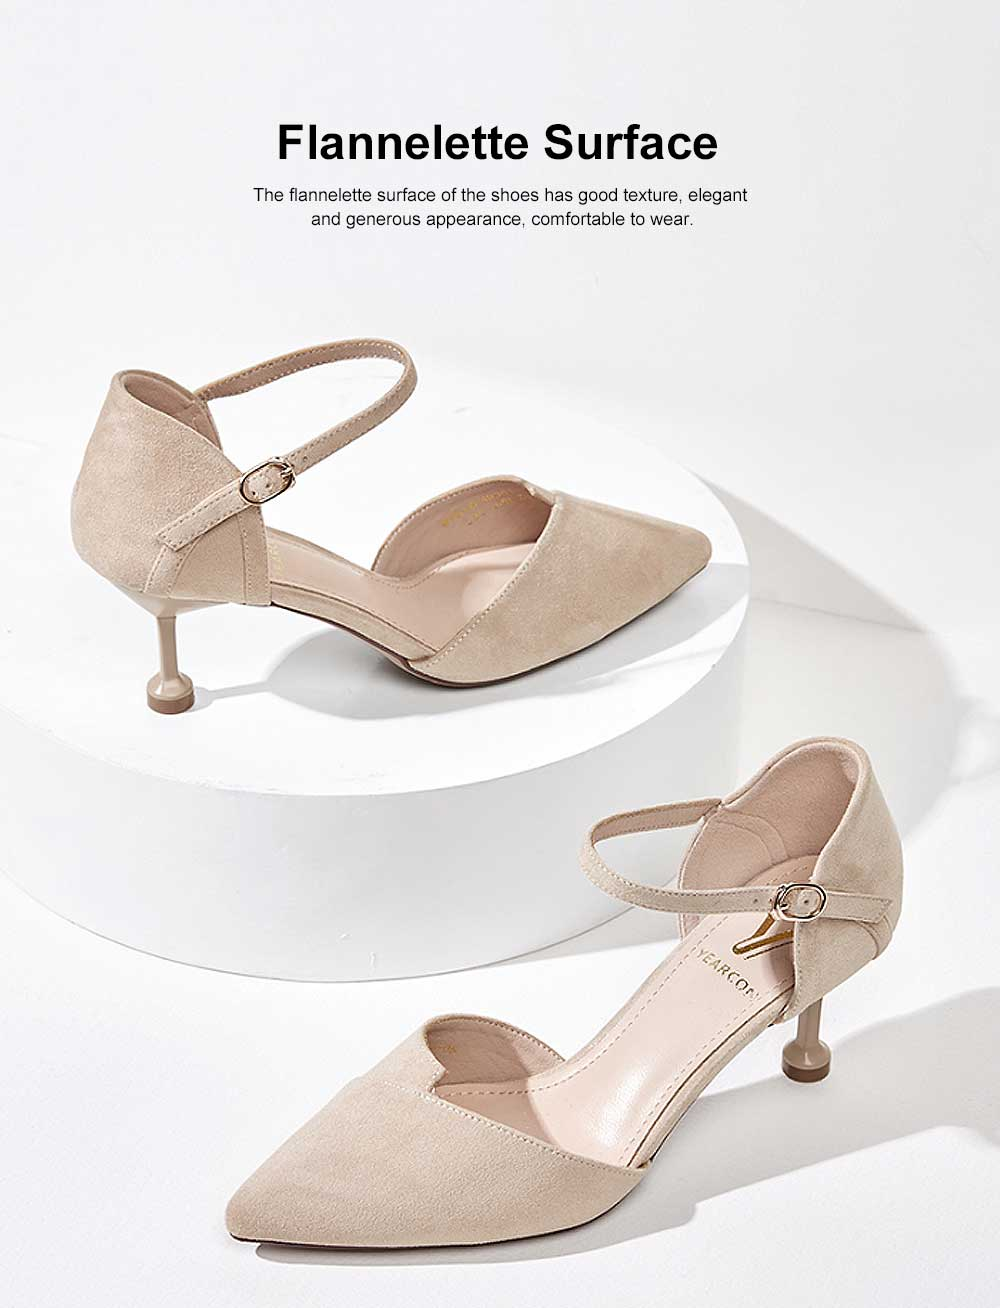 Tip Toe High Heel Sandals for Girl & Women, Women Pointy Stiletto Heels, Single Button Shoes with Platform Strap Buckle 1